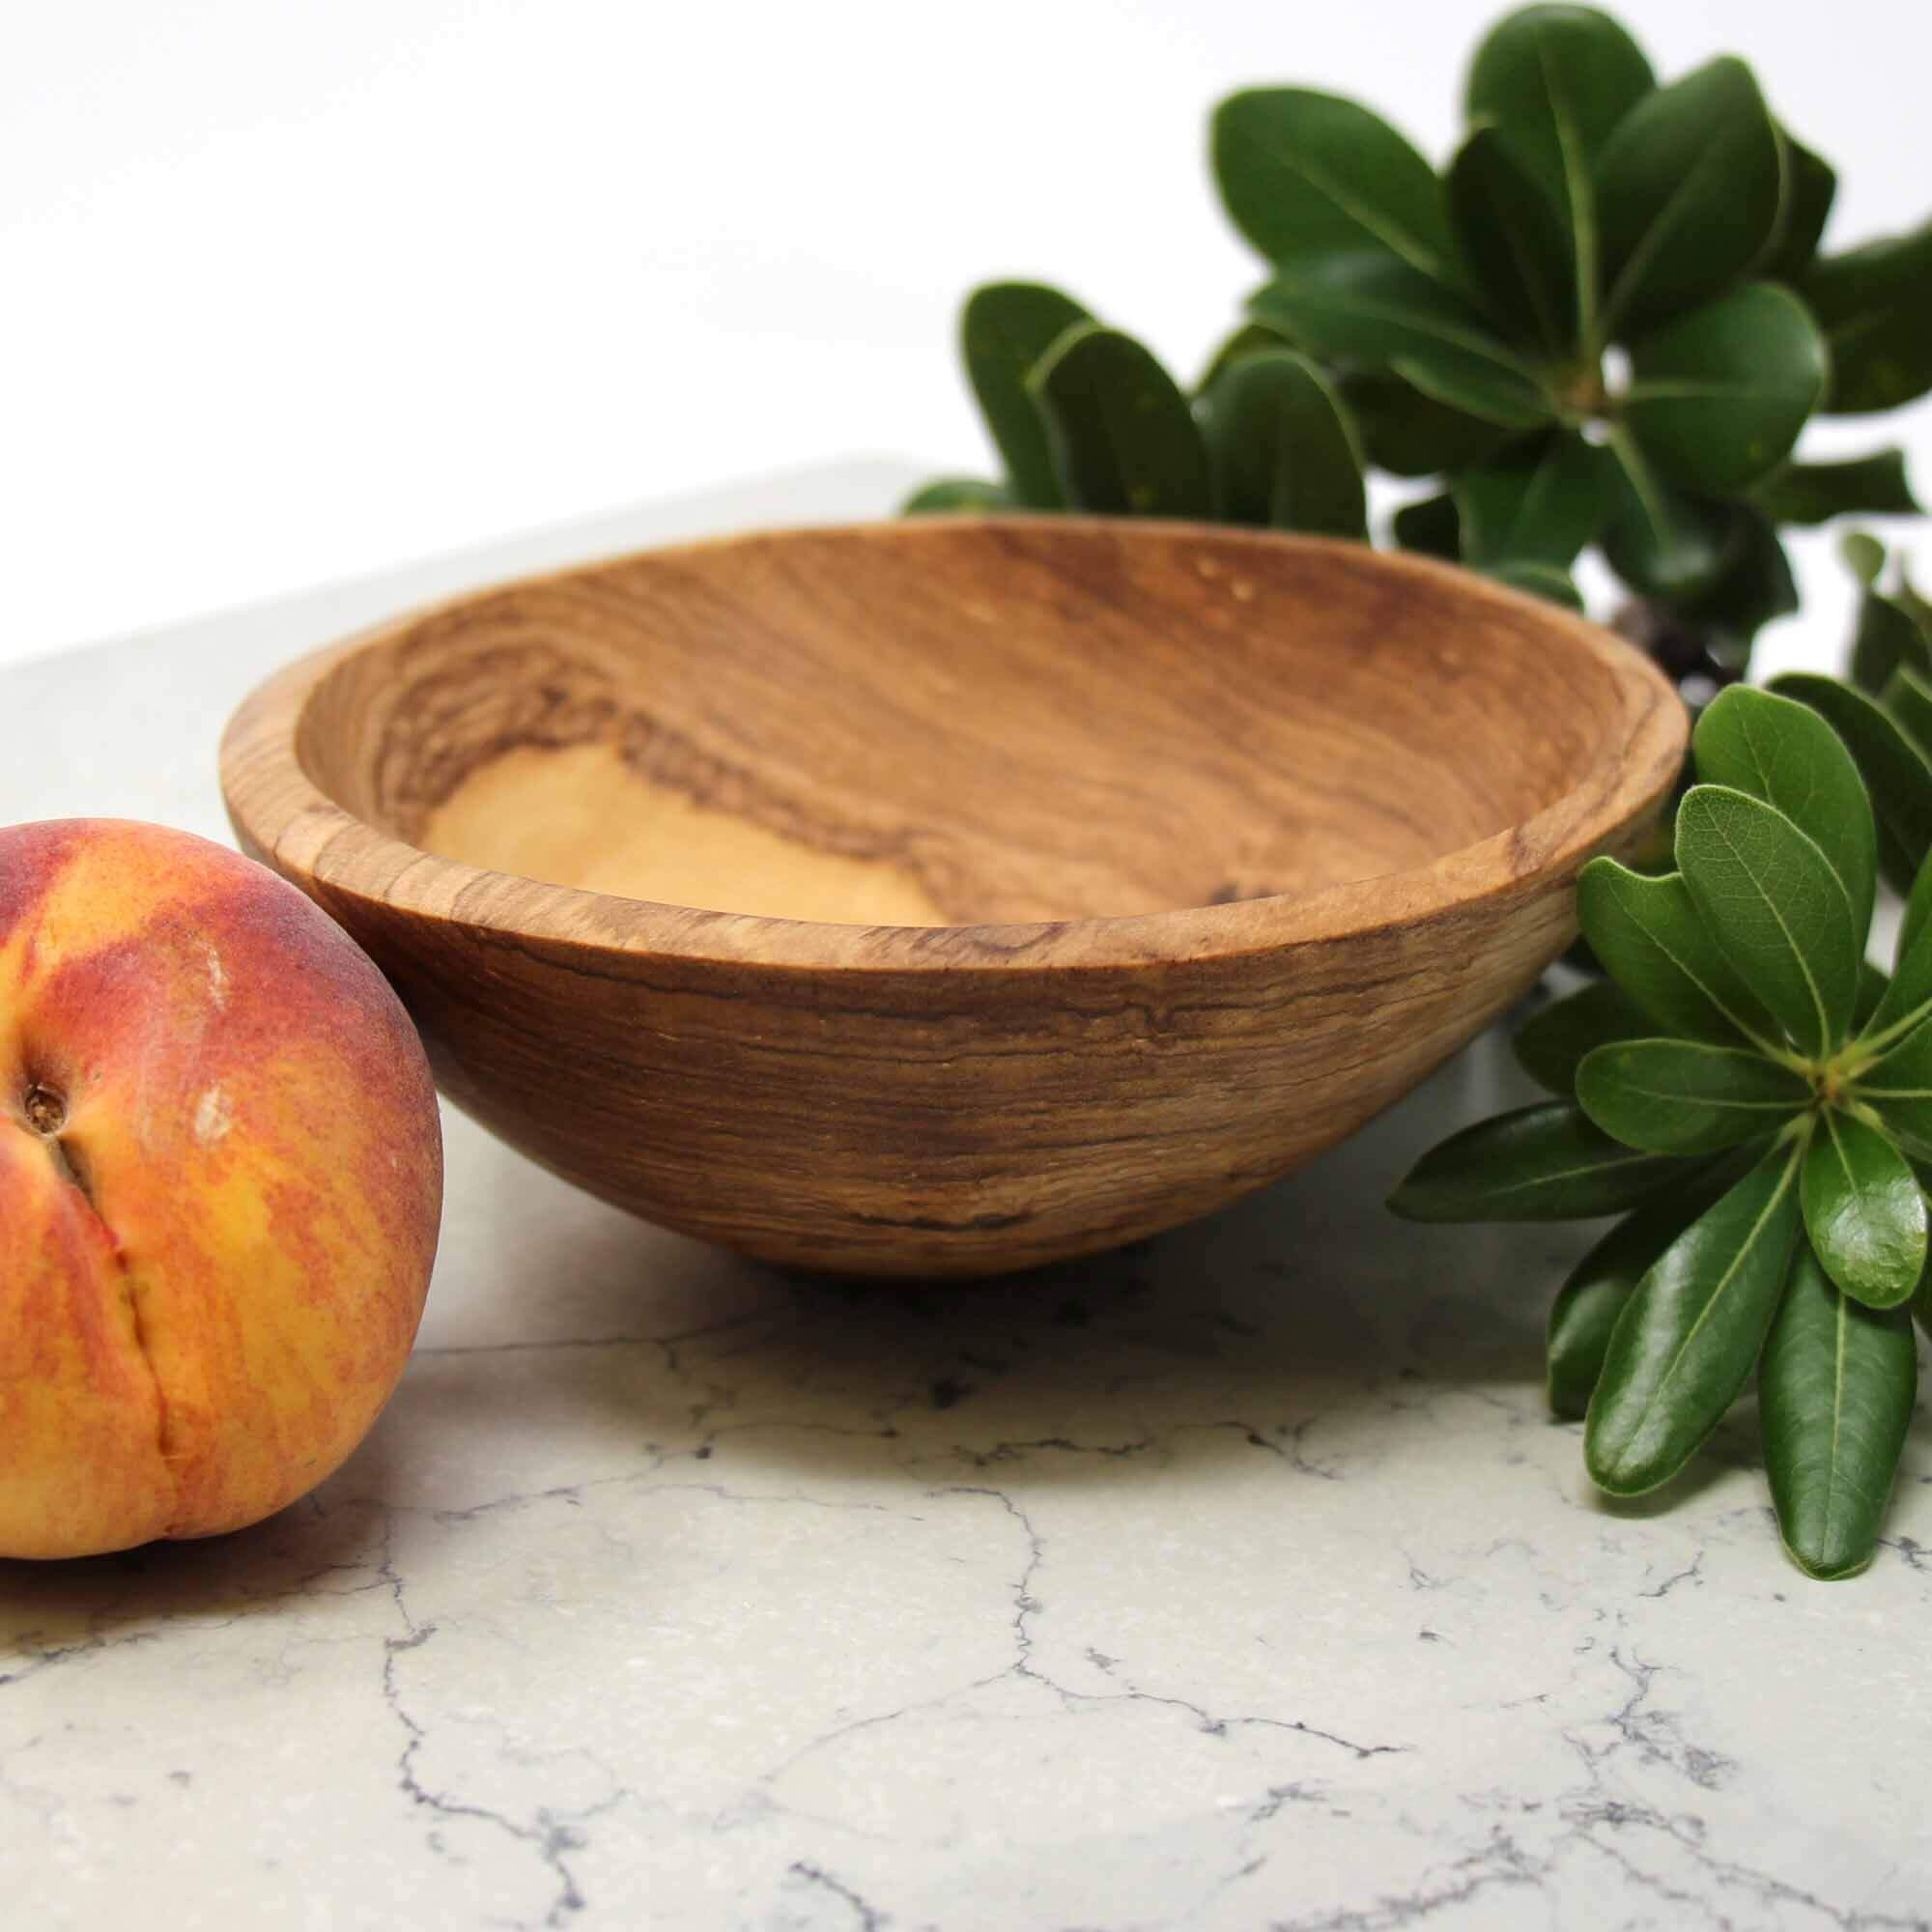 Jedando Handicrafts 6-Inch Hand-Carved Olive Wood Bowl